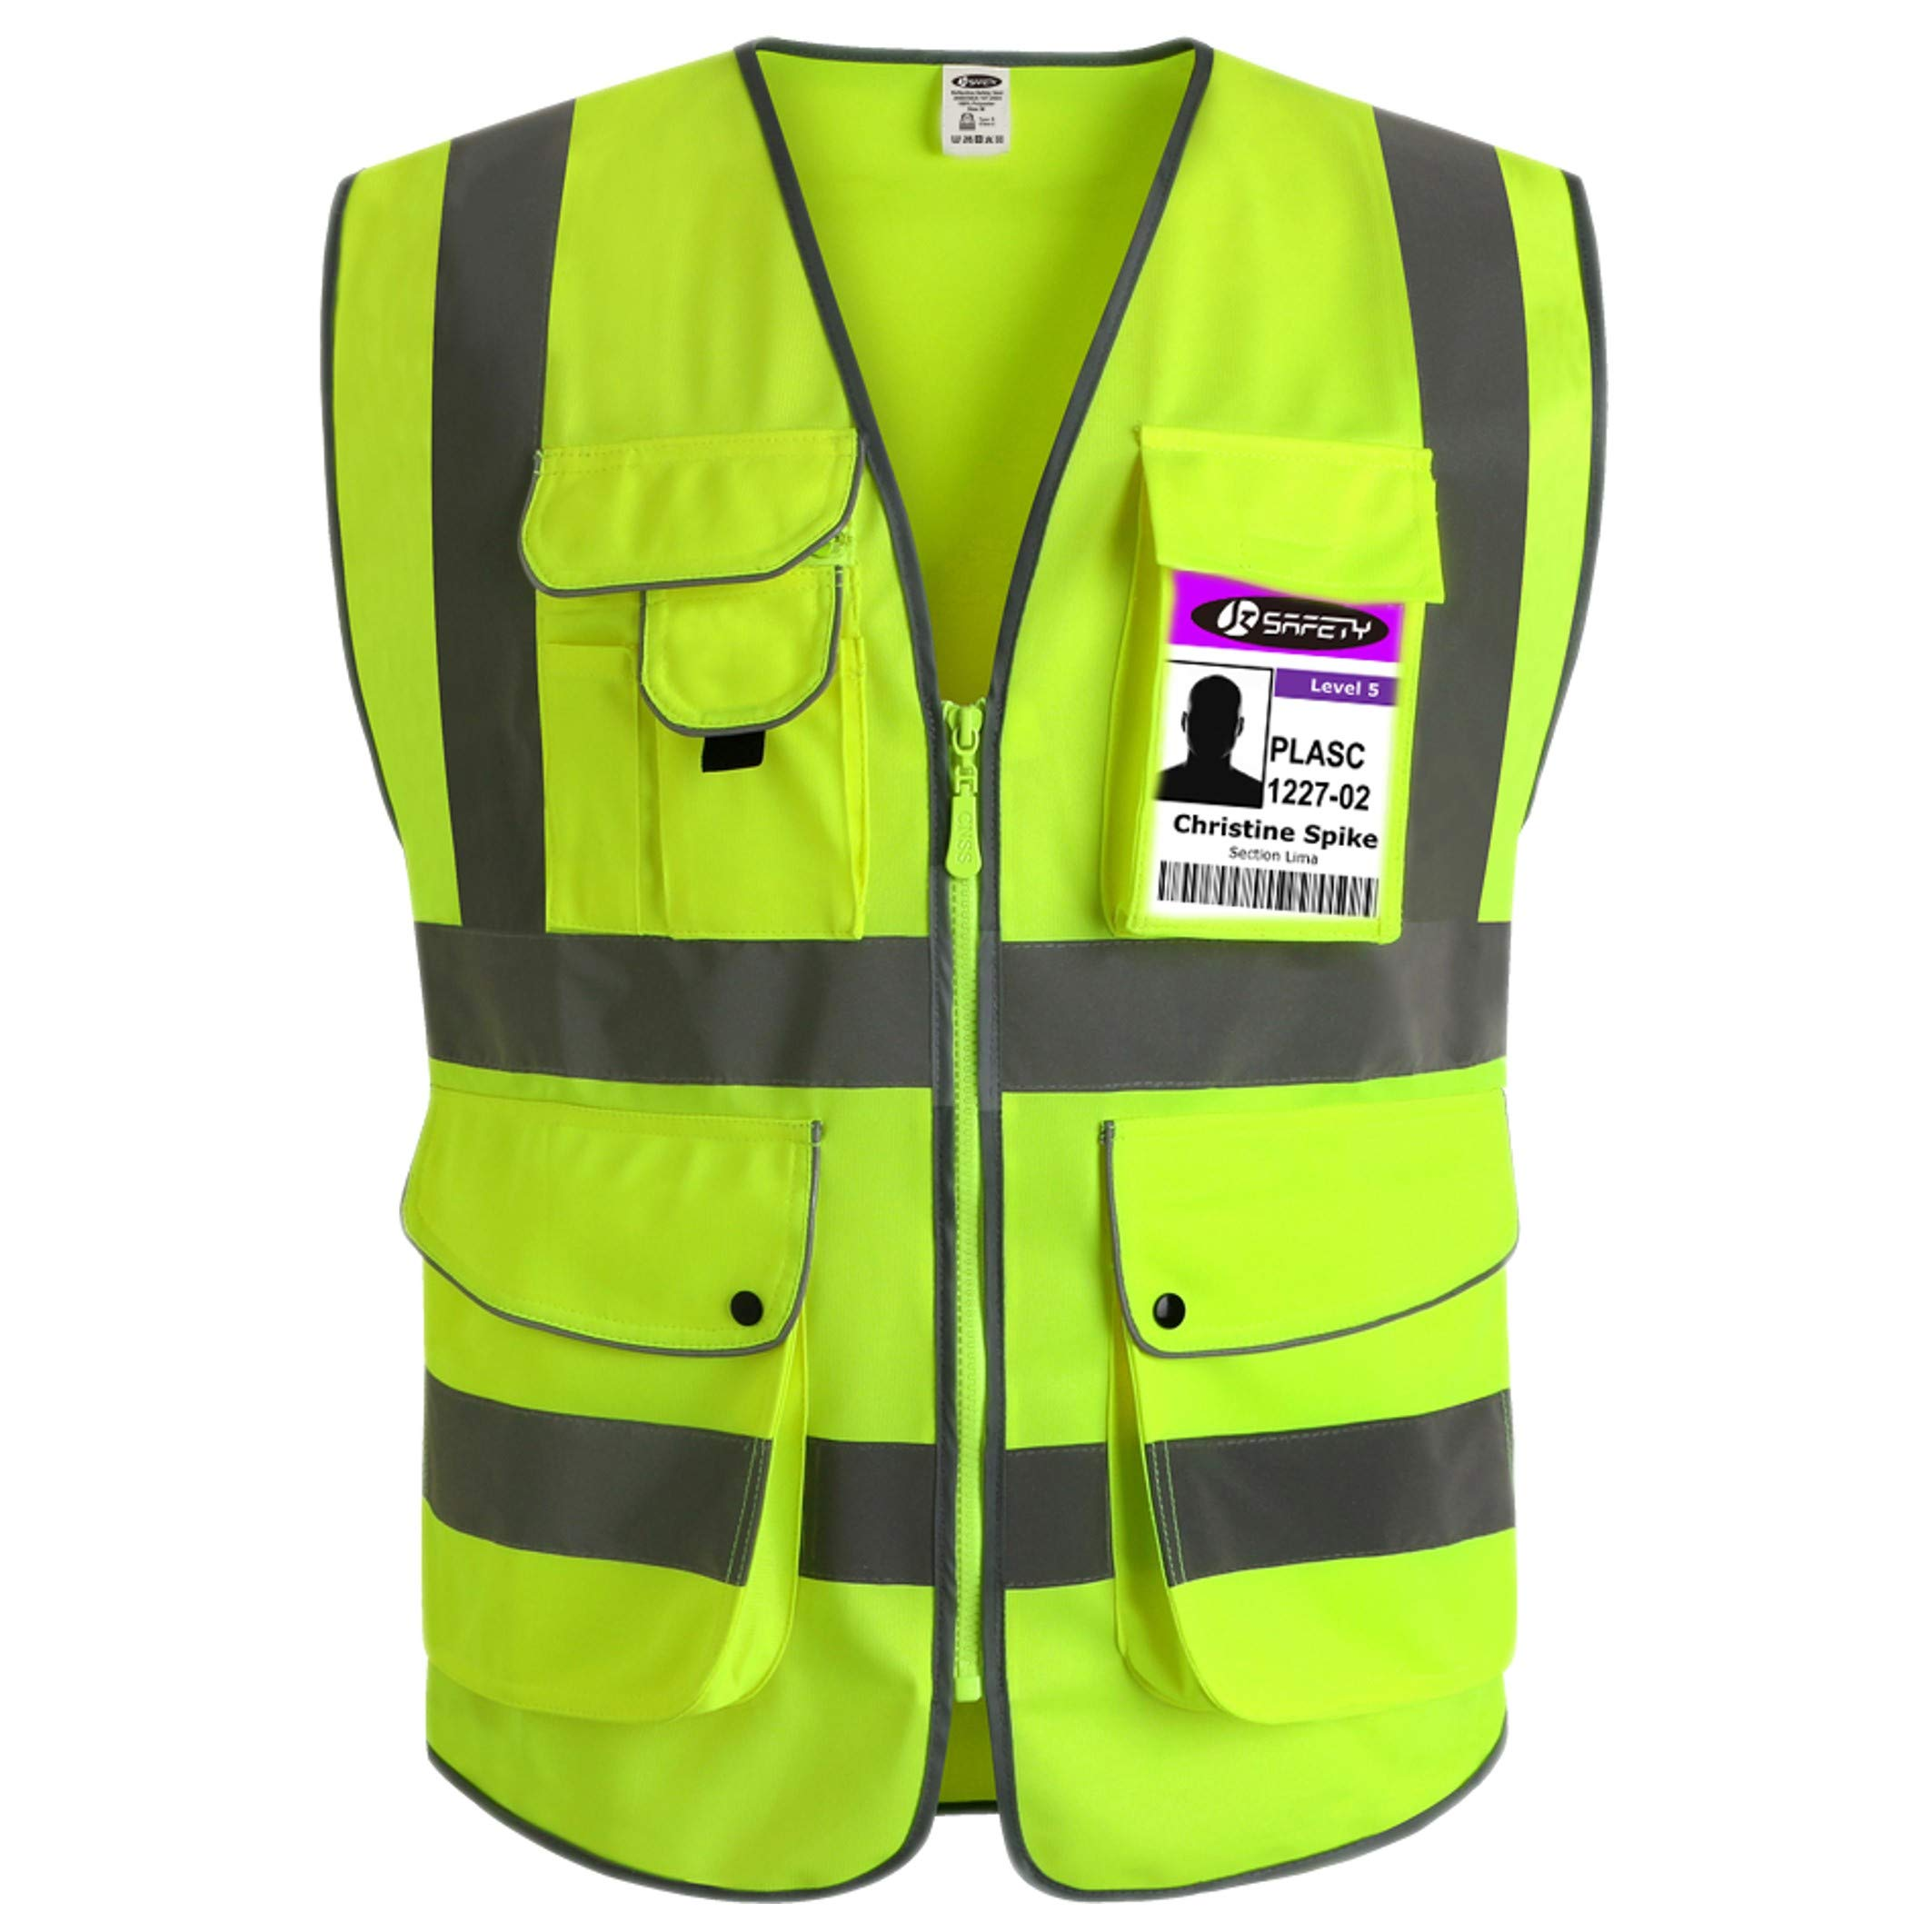 JKSafety 9 Pockets Class 2 High Visibility Zipper Front Safety Vest With Reflective Strips, Yellow Meets ANSI/ISEA Standards (Large) by JKSafety